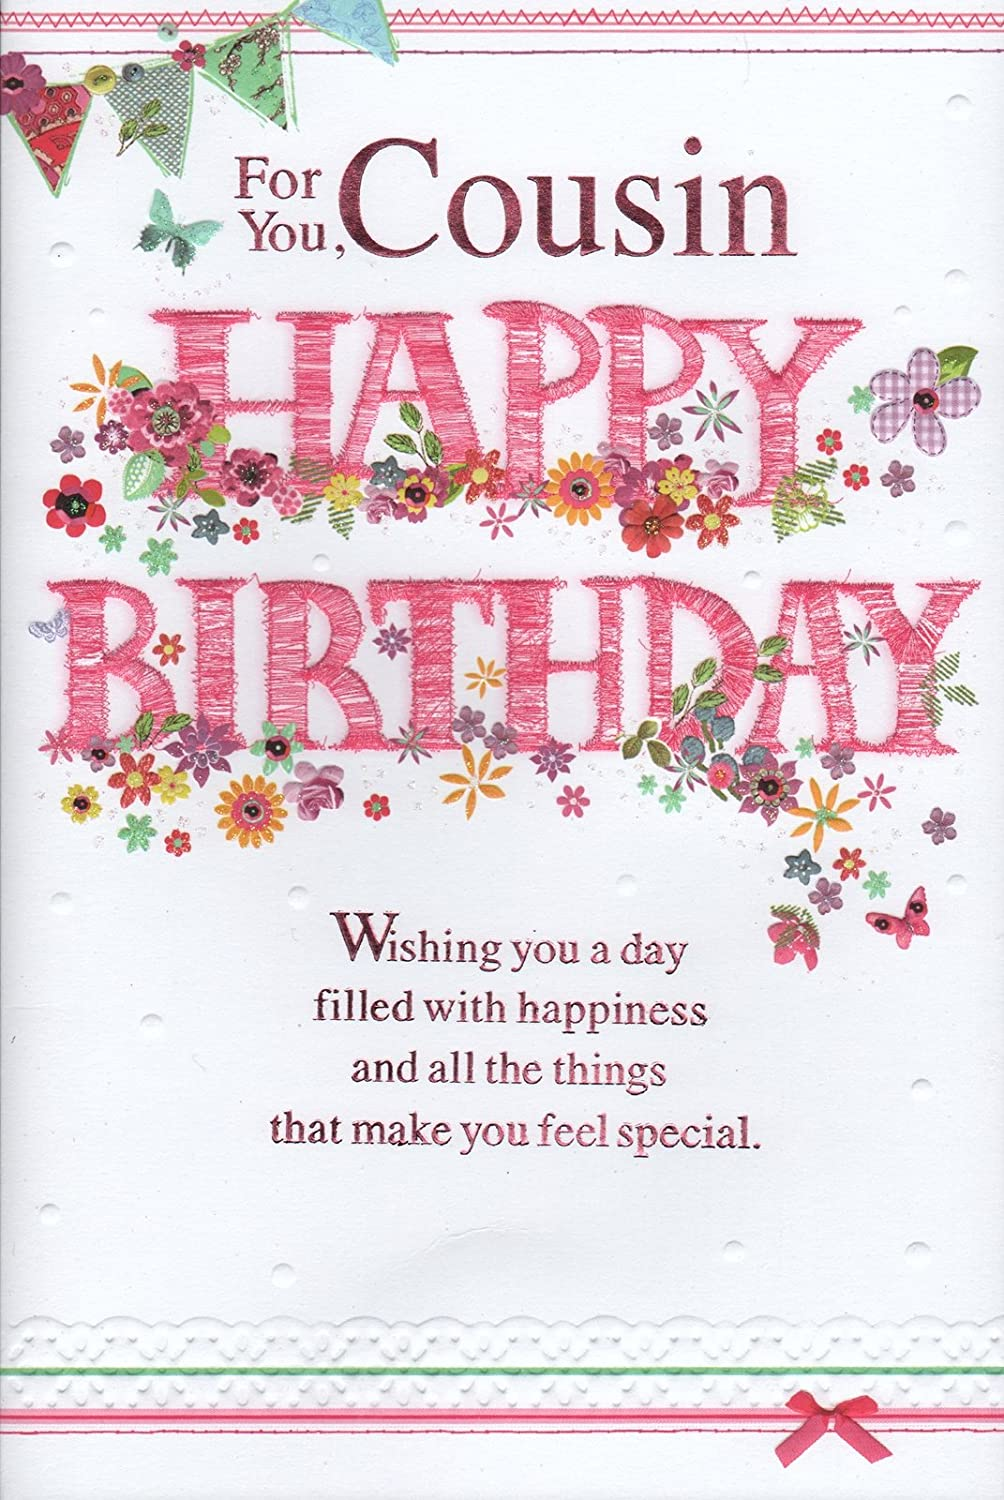 Cousin Birthday Card For You Cousin Happy Birthday Female – Happy Birthday Cousin Card